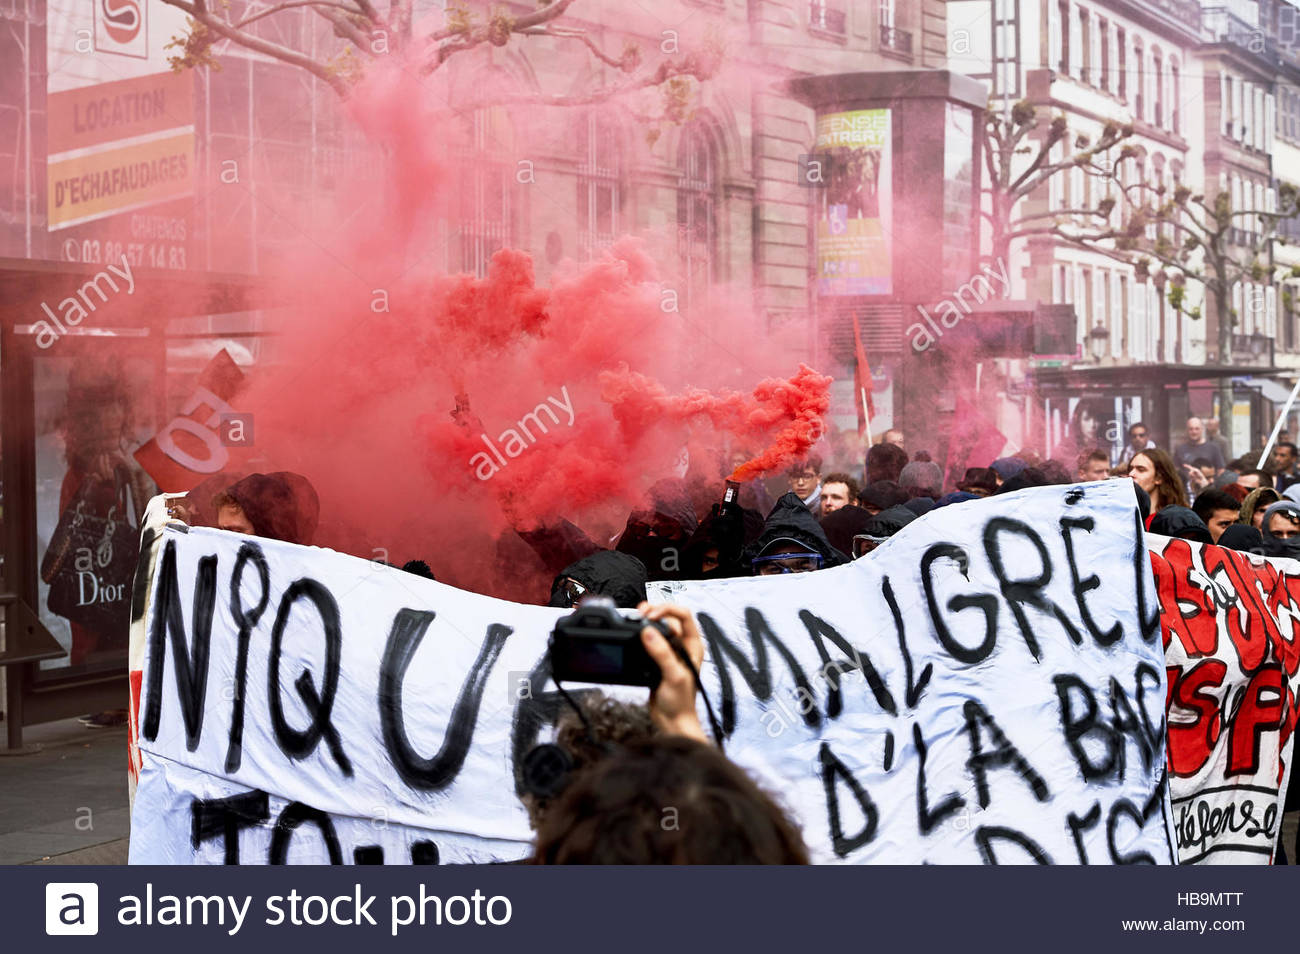 smoke grnades and paint on walls at protest stock photo royalty